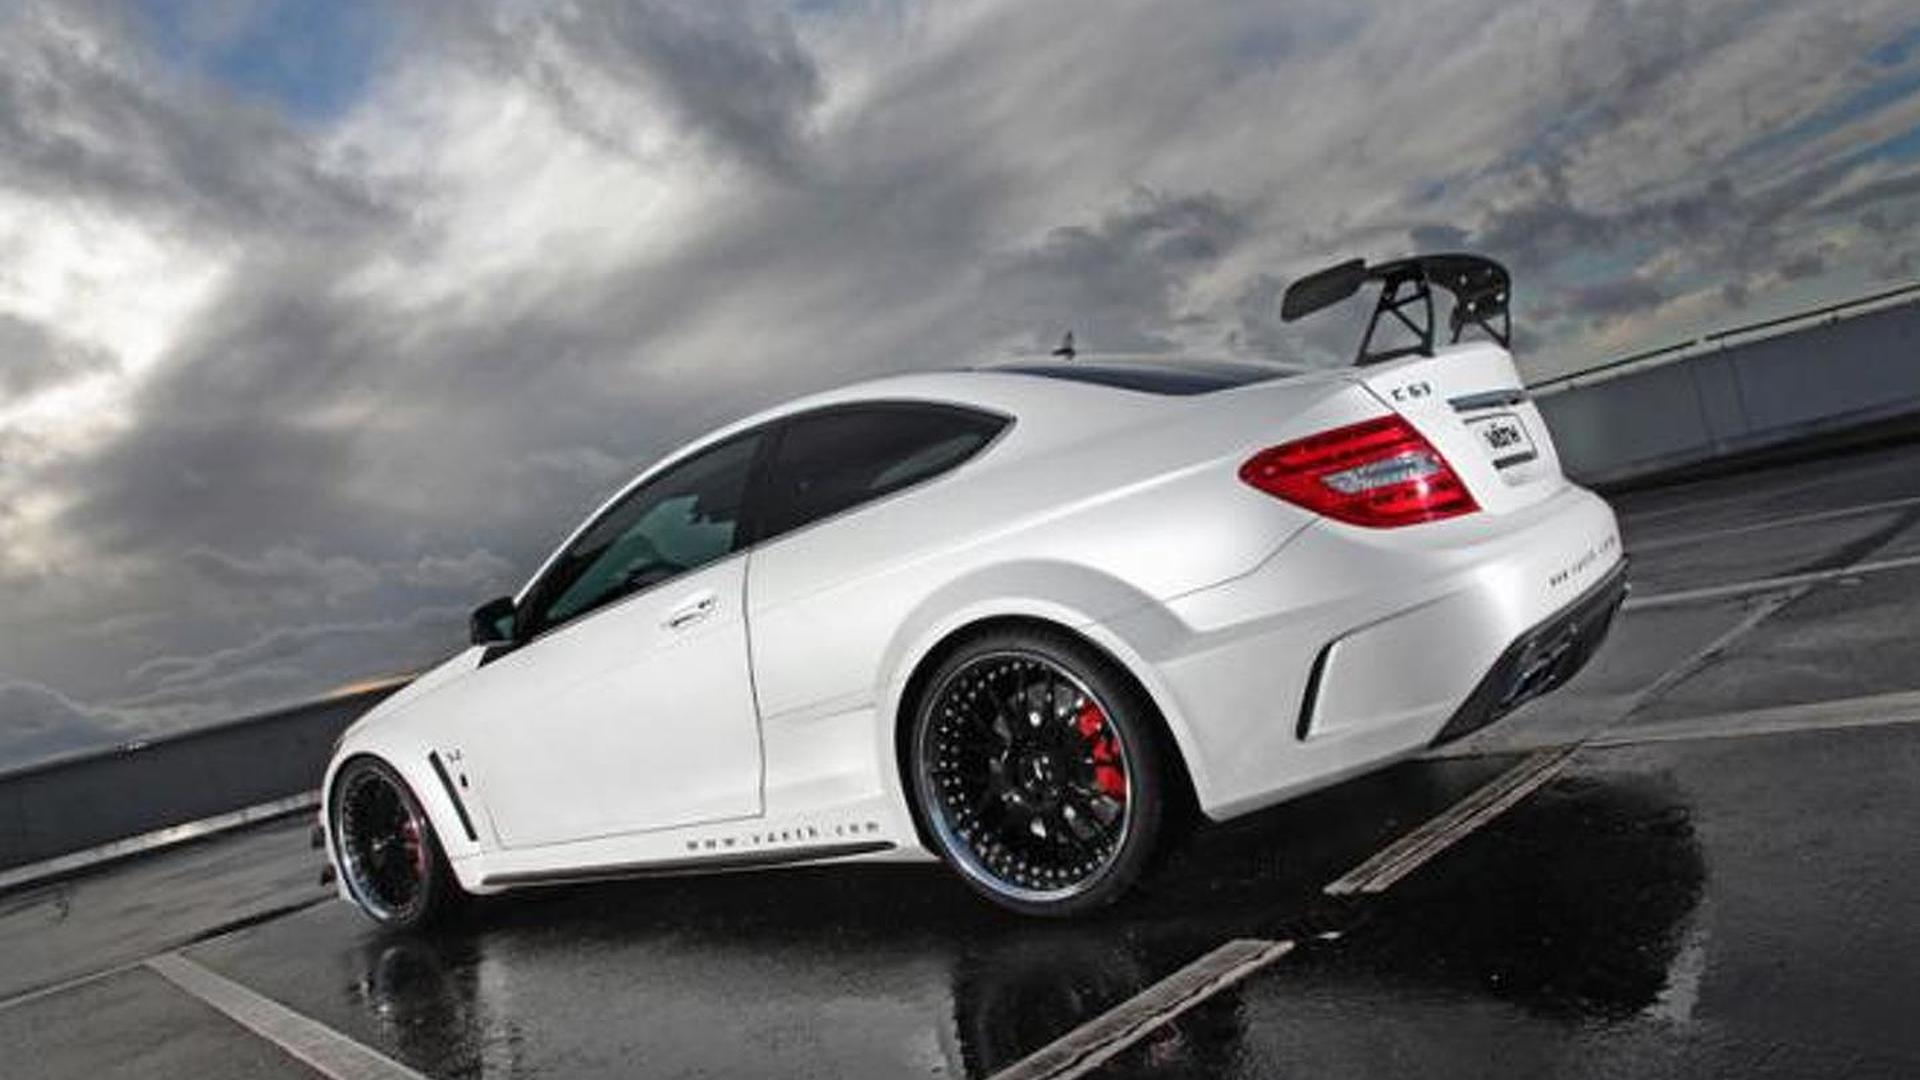 Väth Upgrades Mercedes Benz C63 Amg Coupe Black Series To 756 Hp